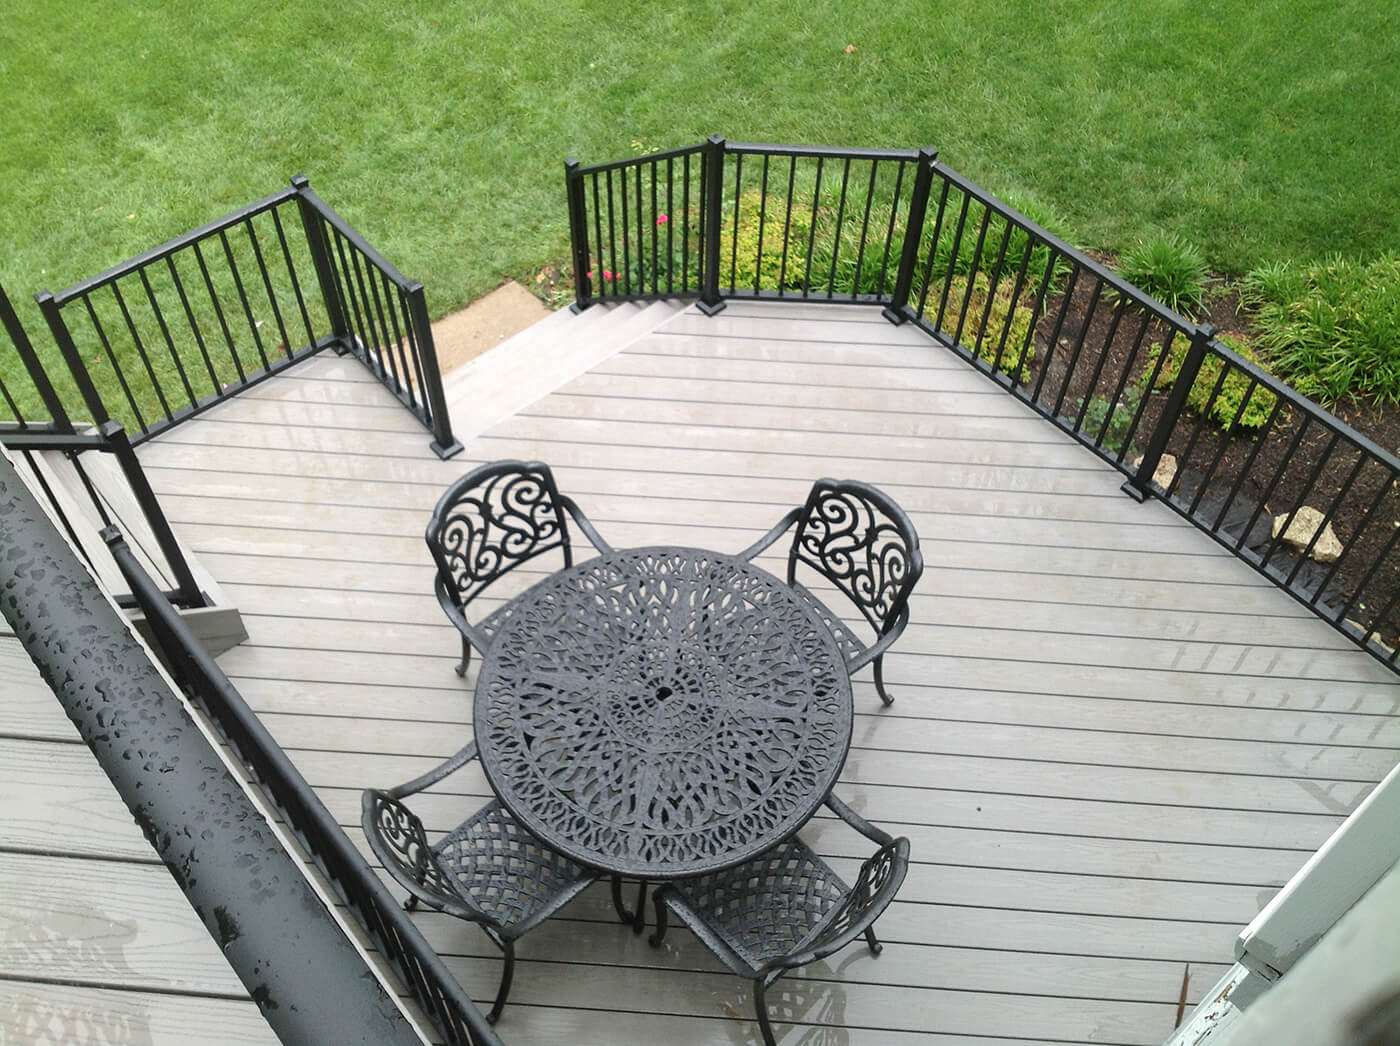 Seating area on wood deck with black metal railing